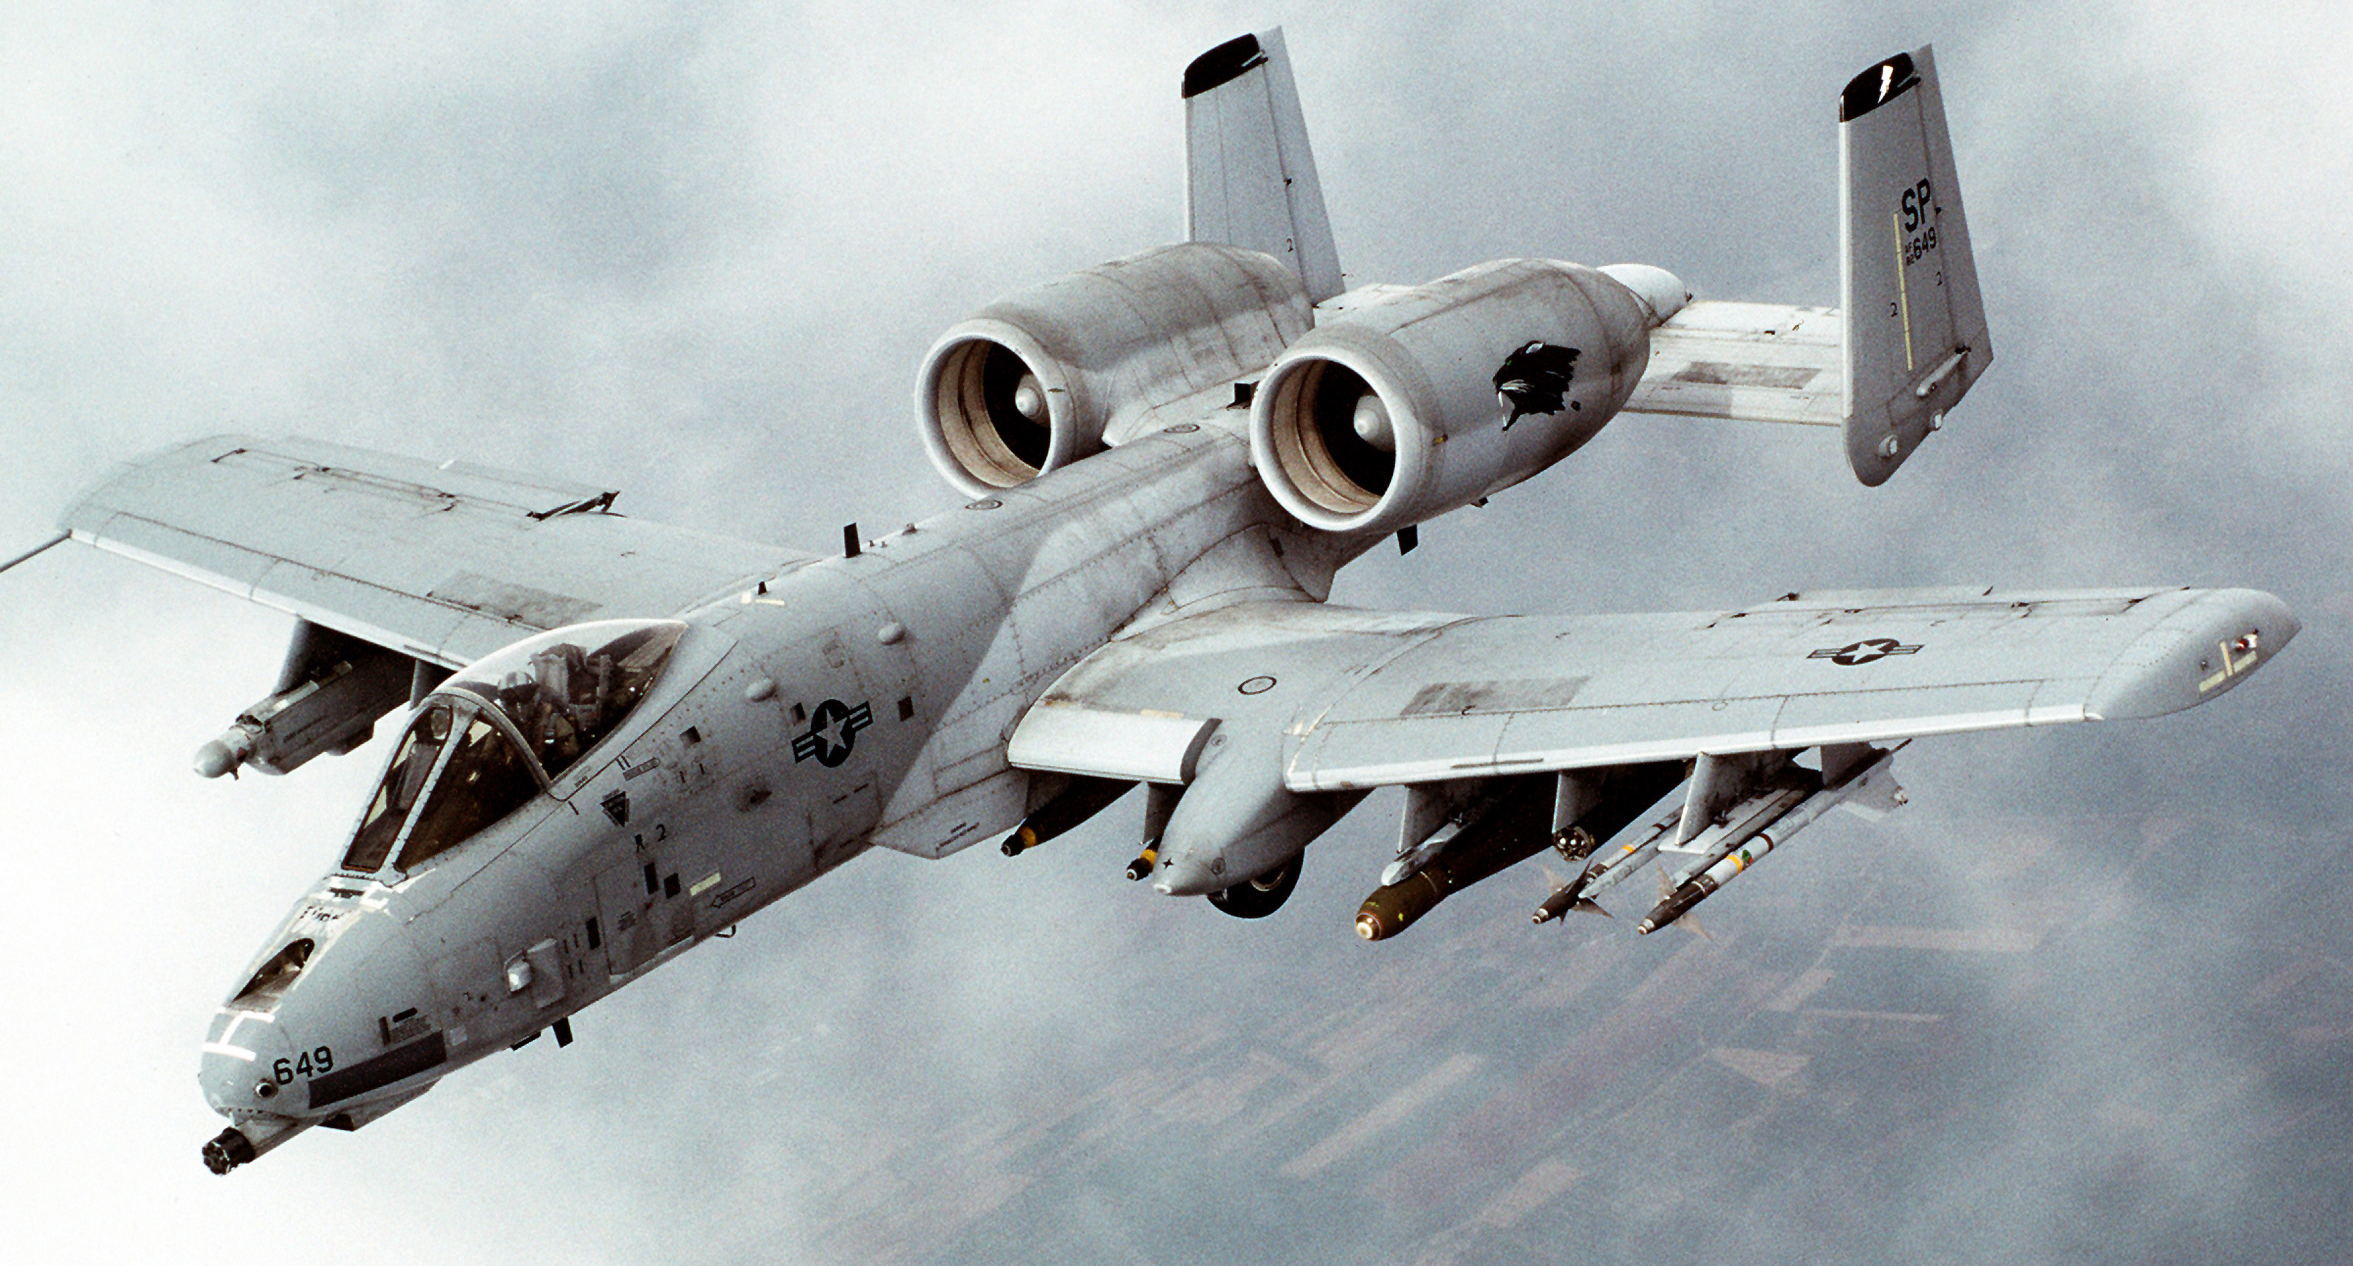 File:A-10 Thunderbolt II In-flight-2.jpg - Wikipedia, the free ...